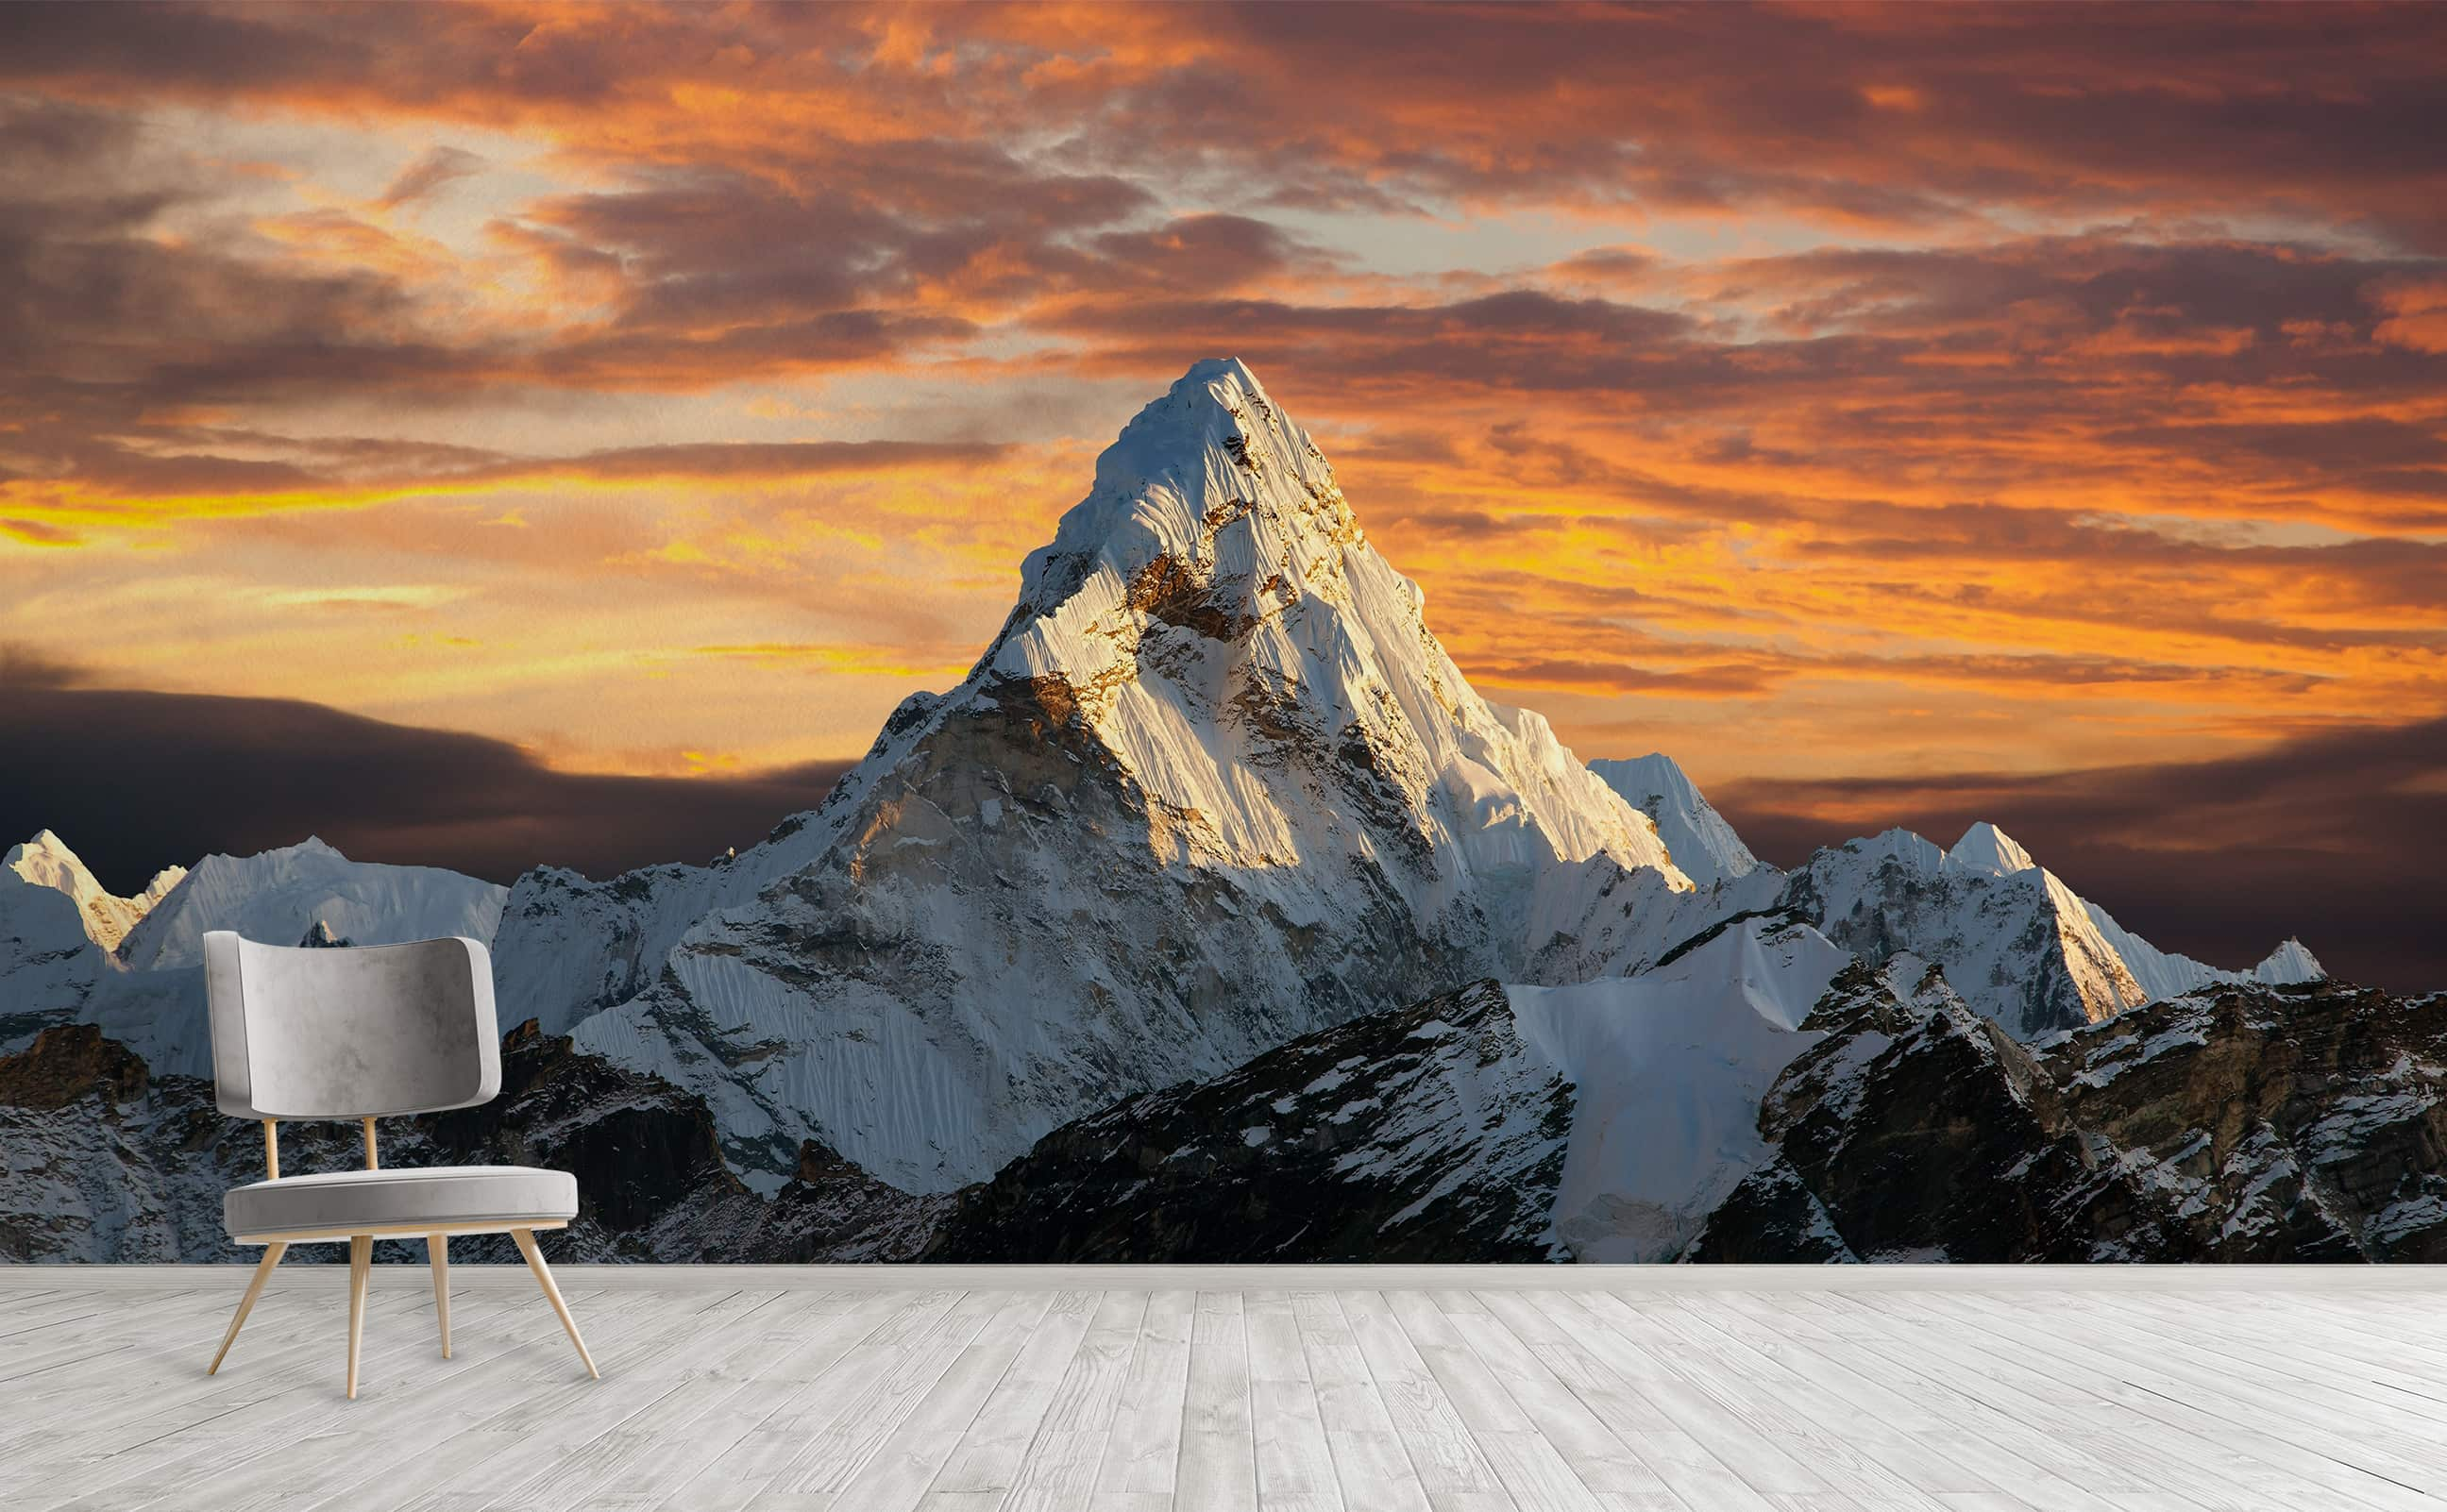 Himalayas Mount Everest Panoramic Sunset Landscape Wall Mural Everest